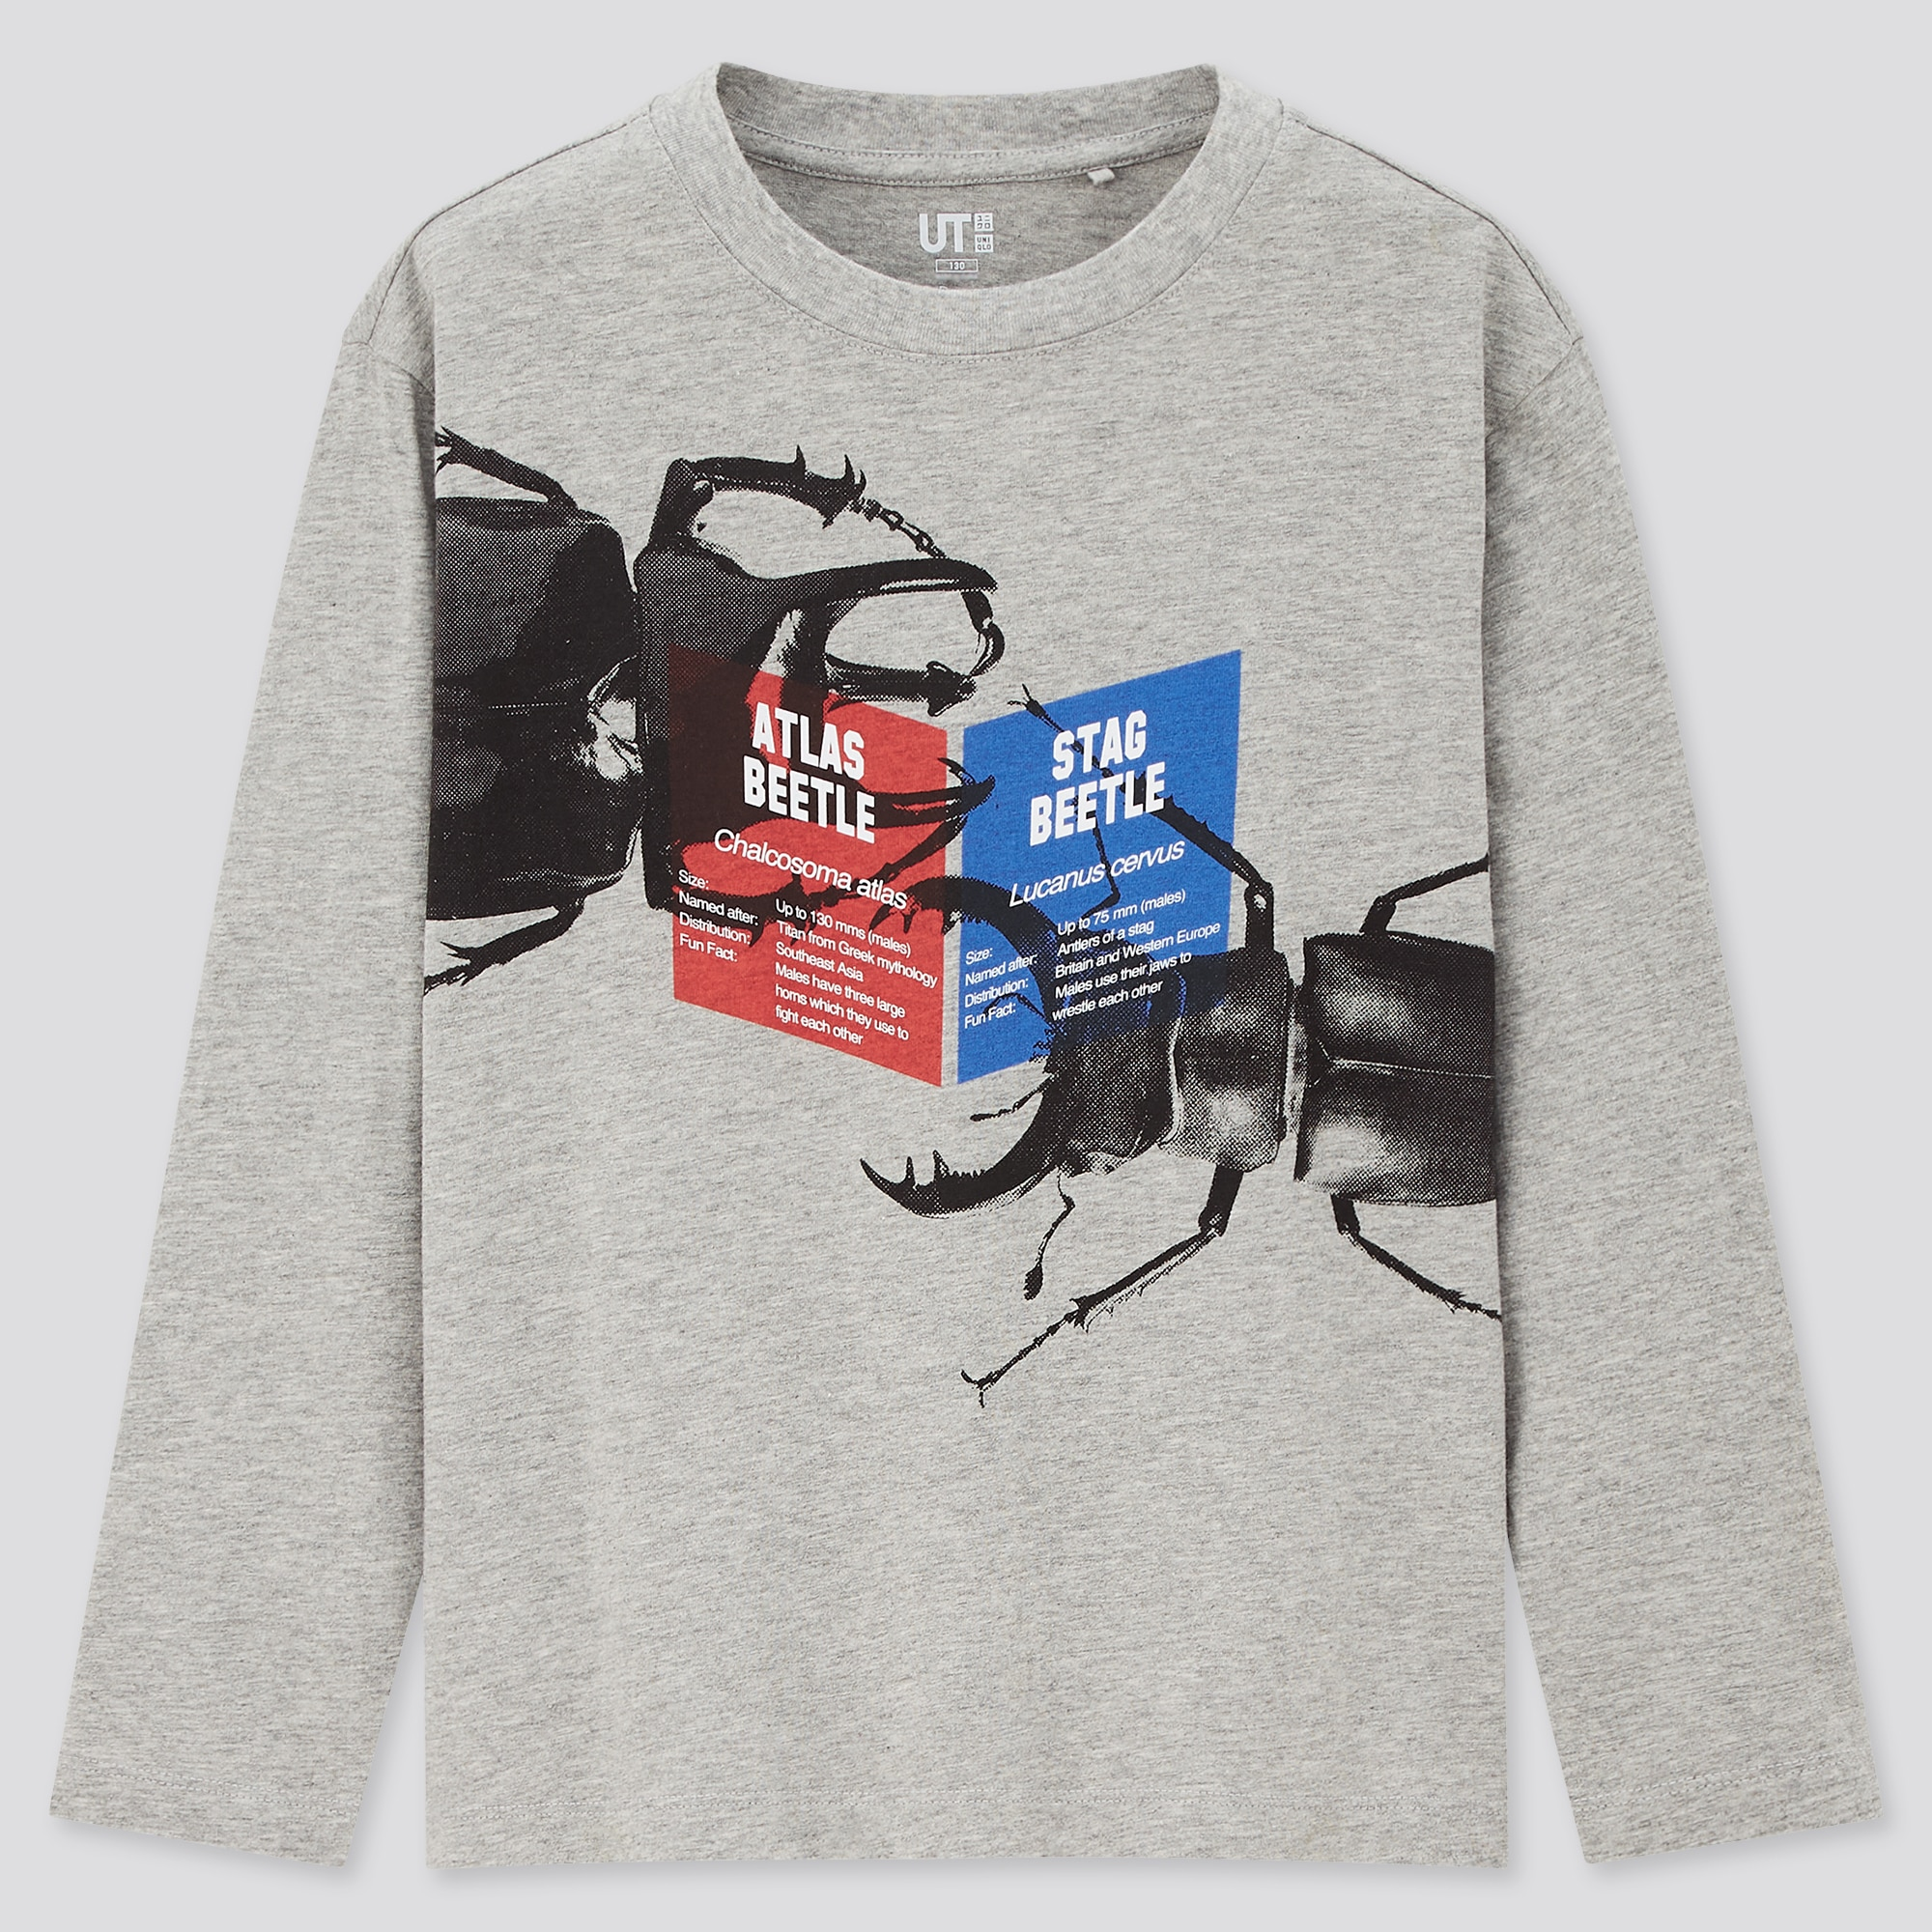 Uniqlo KIDS NATURAL HISTORY MUSEUM UT (LONG-SLEEVE GRAPHIC T-SHIRT)